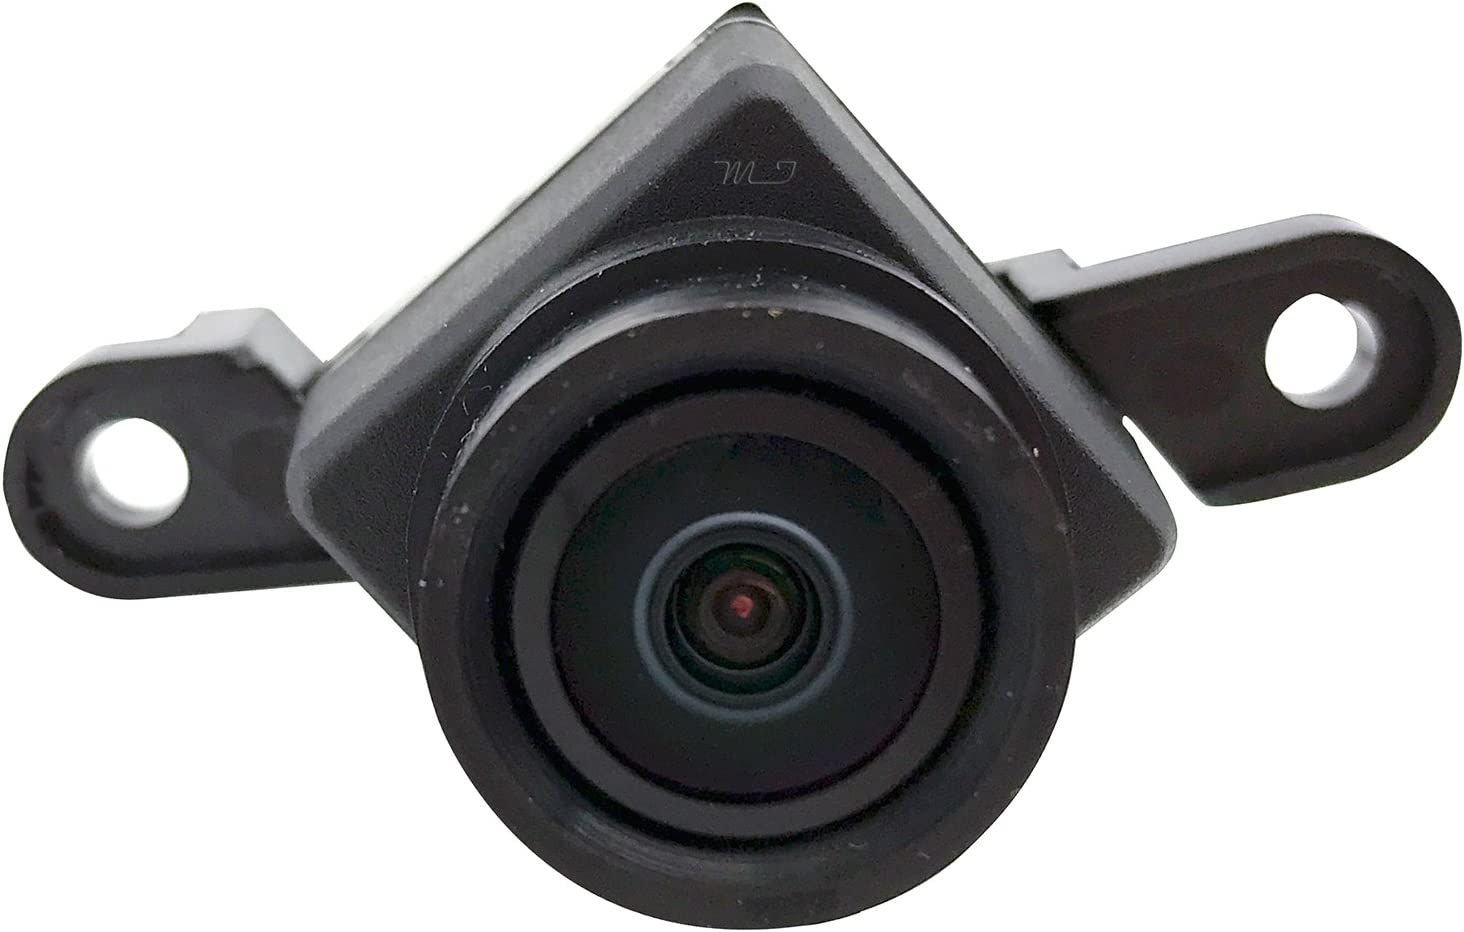 AJ//AL//AH Master Tailgaters Backup Tailgate Camera for Dodge Ram 2013-2015 OE Replacement Part # 56038978AG